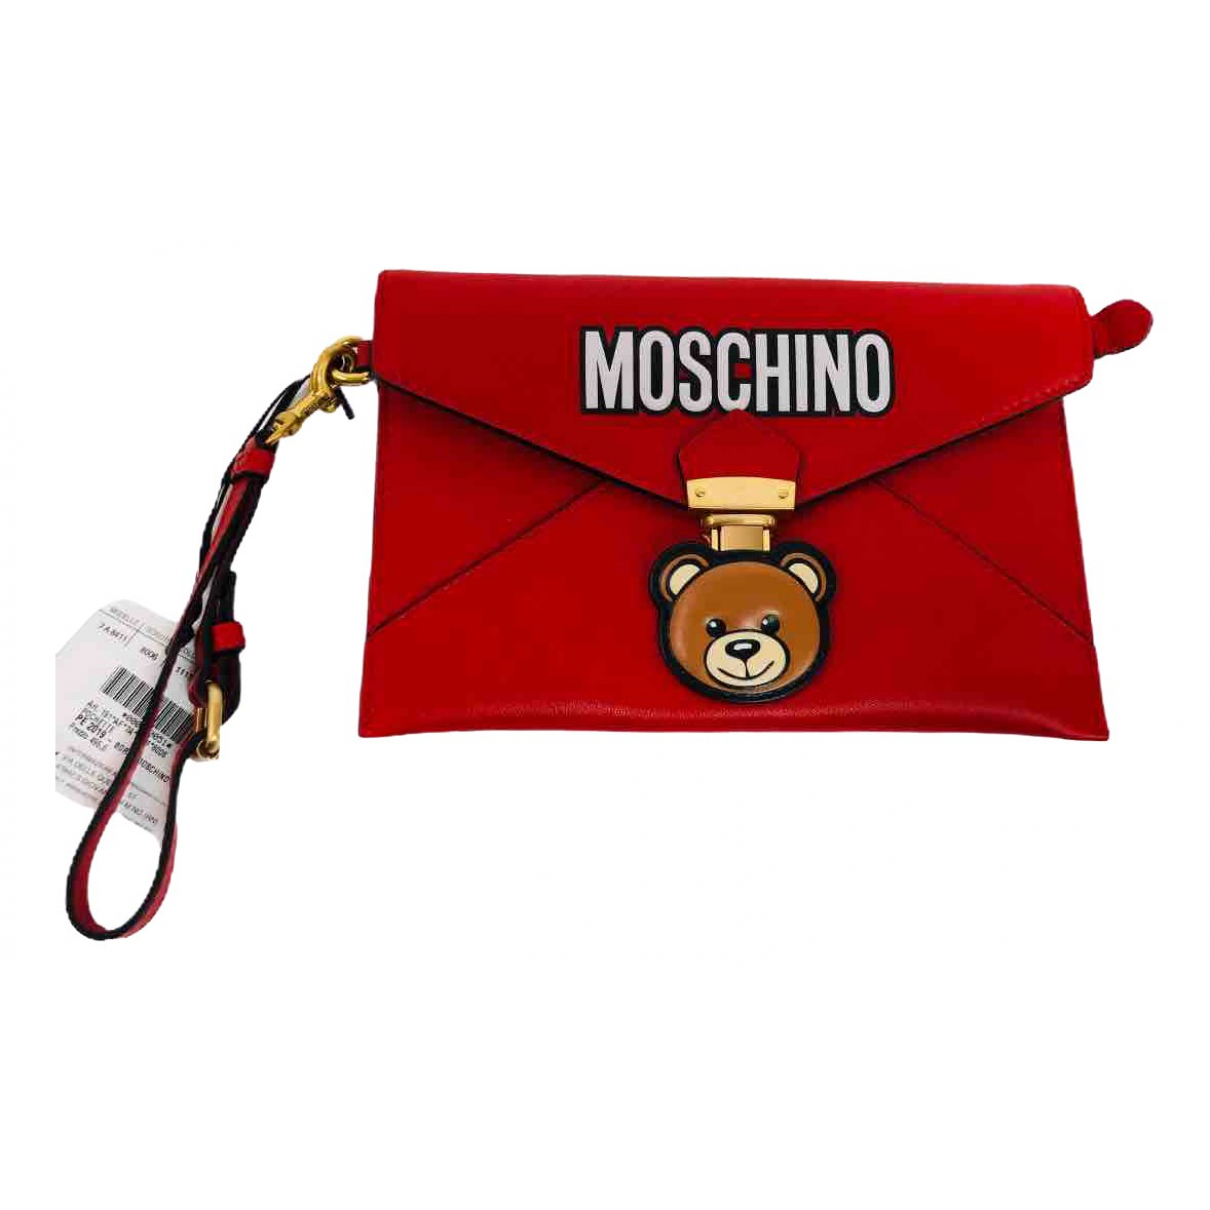 Moschino \N Red Leather Clutch bag for Women \N